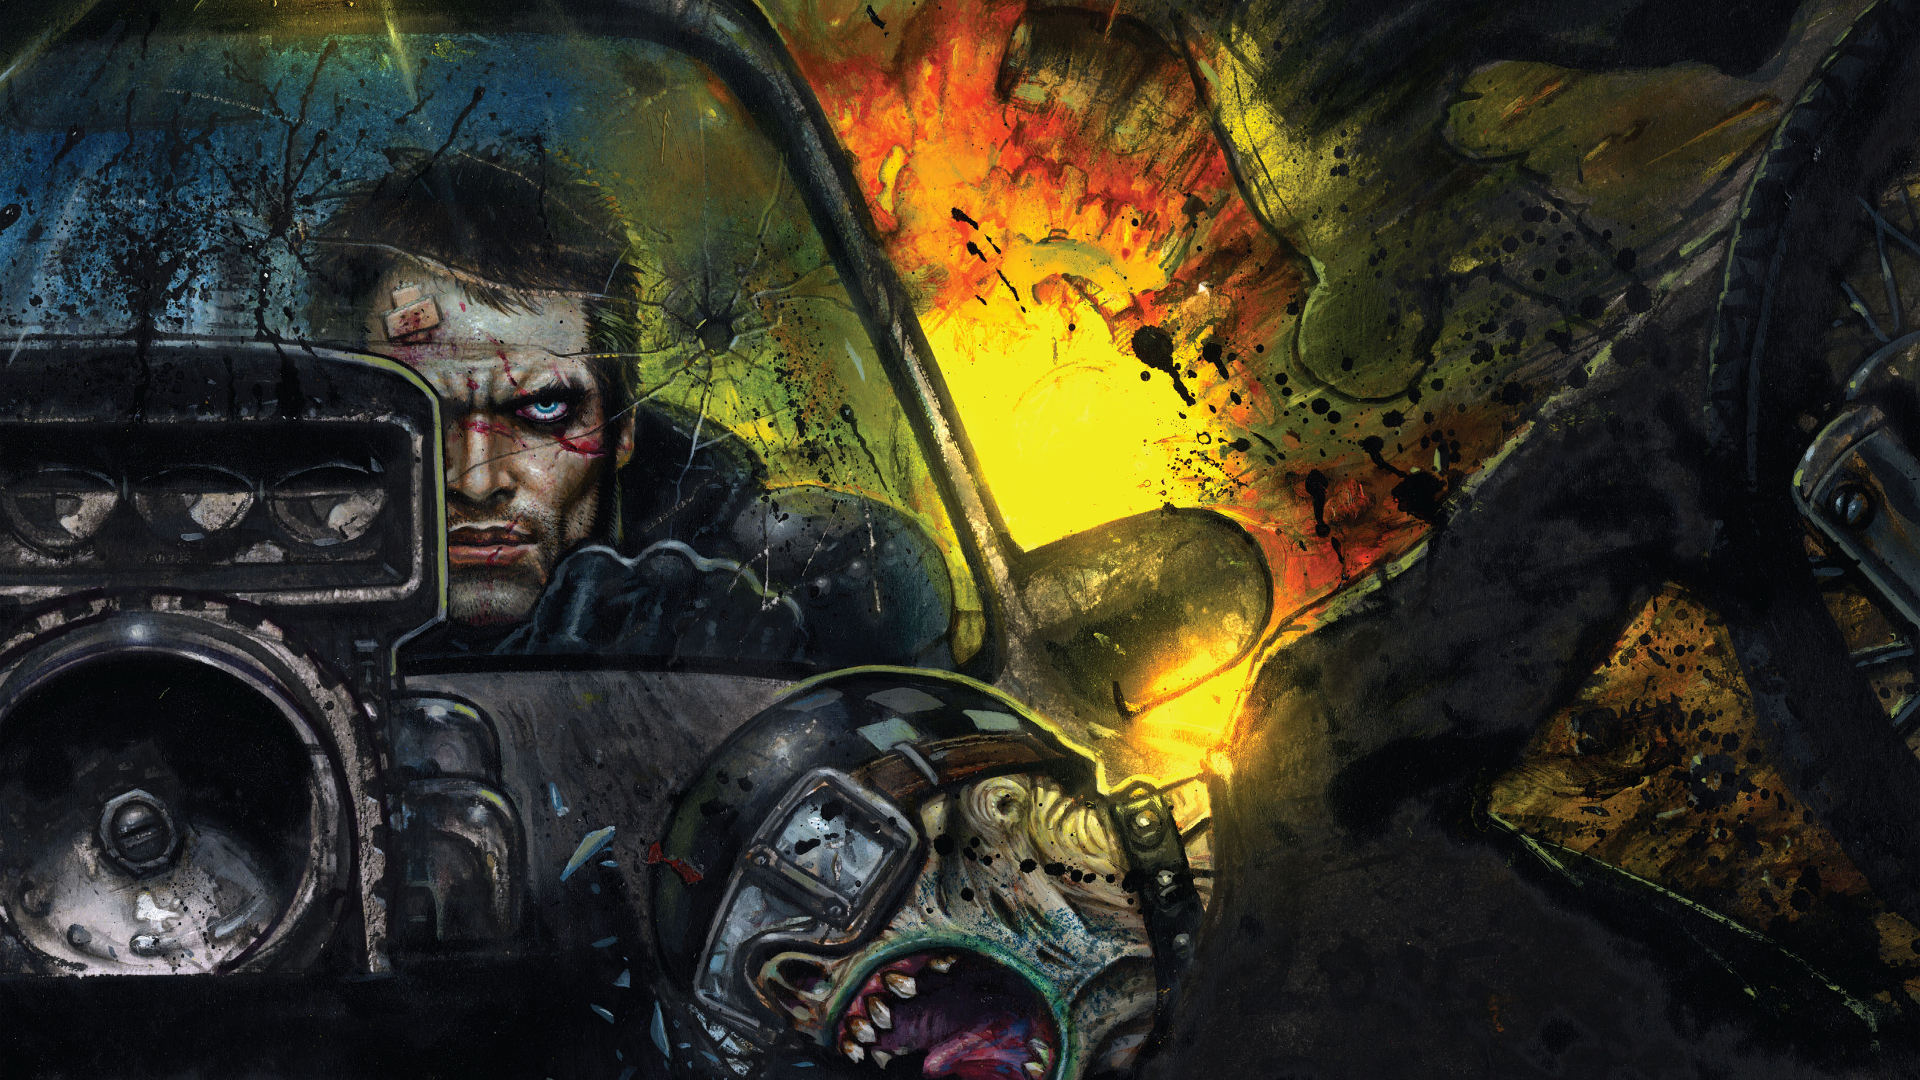 Alpha Coders Car Wallpapers Mad Max Fury Road Full Hd Wallpaper And Background Image